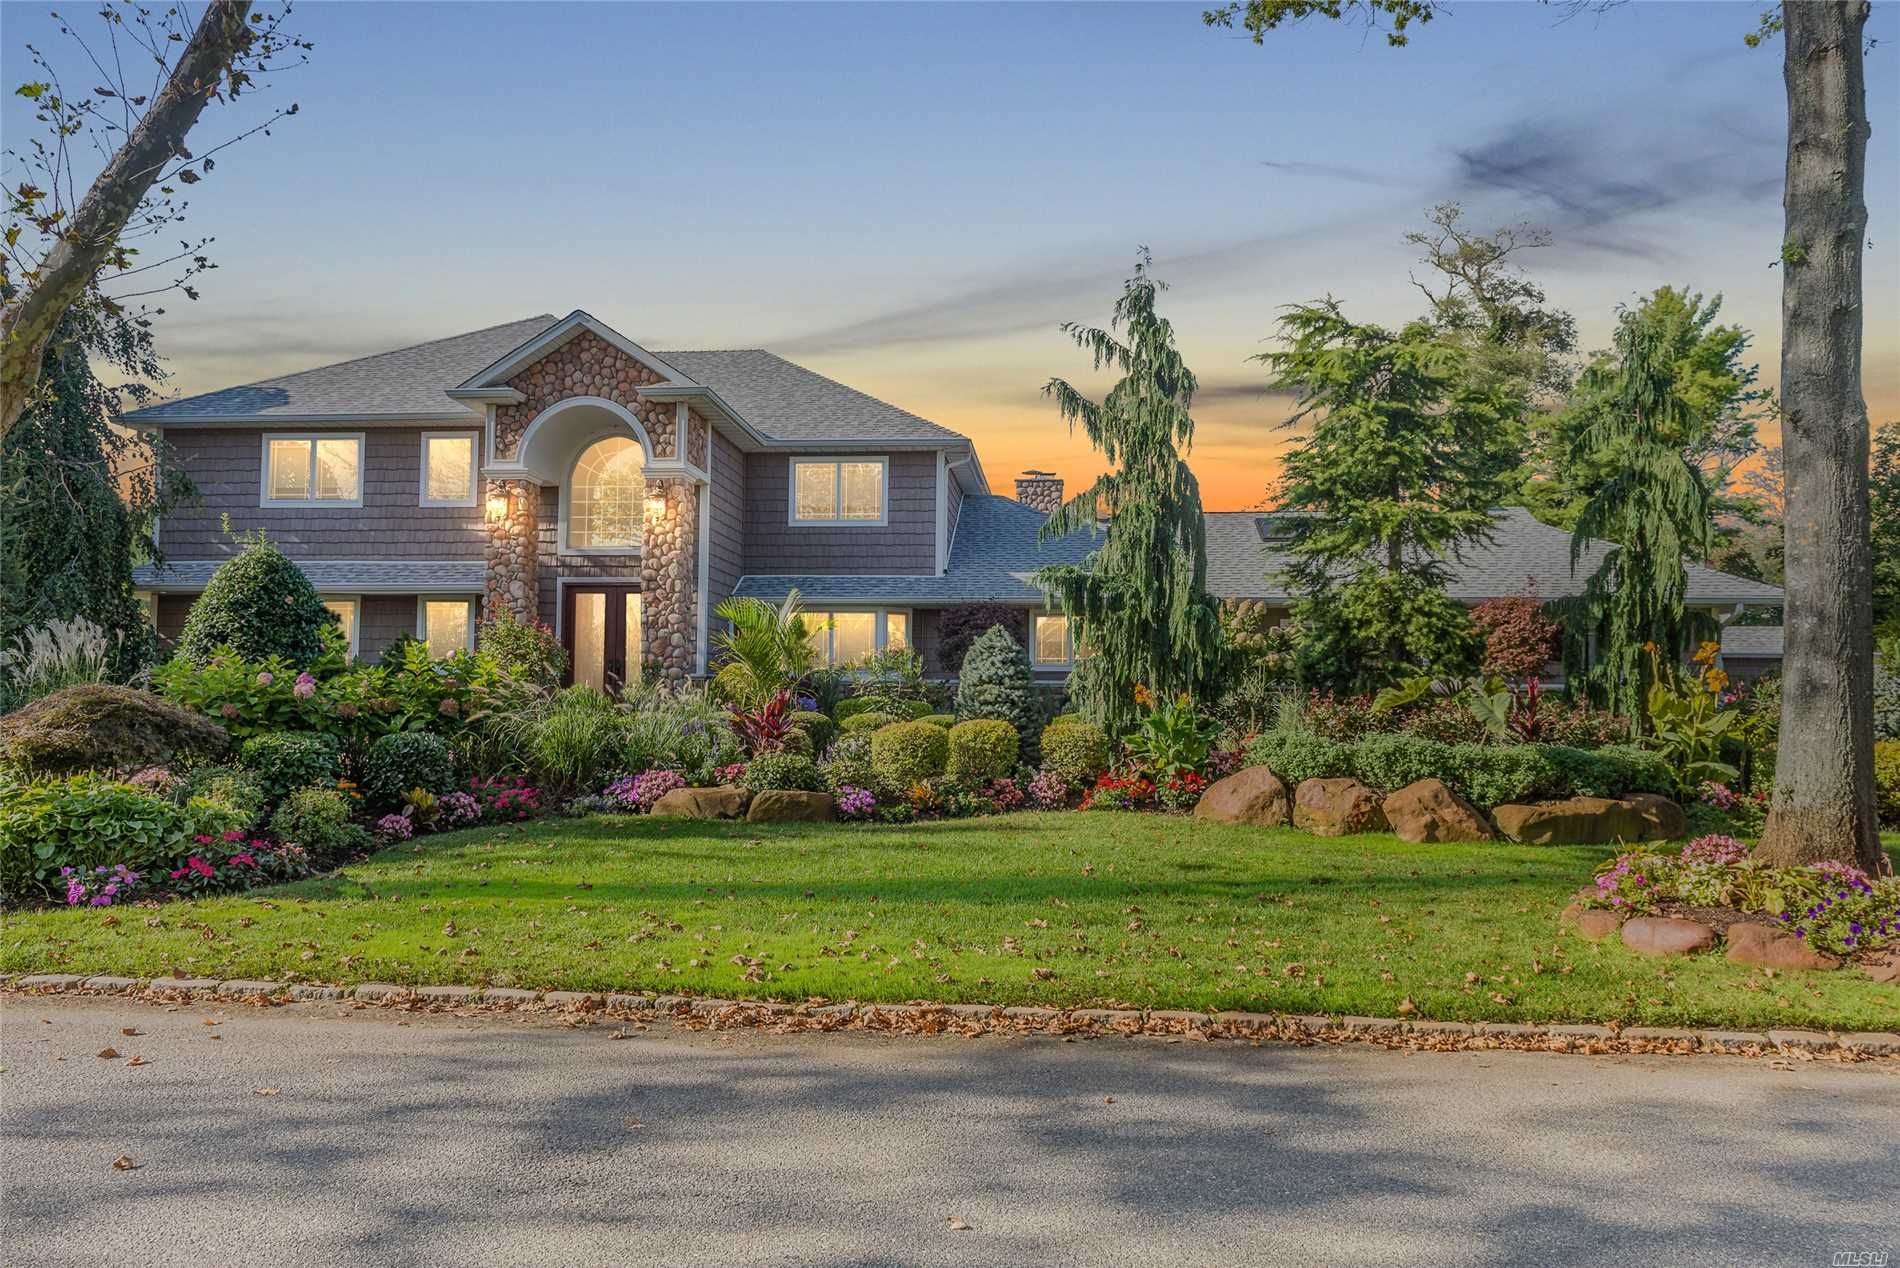 Must See This Completely Updated Expanded Ranch. Magnificent Landscaping With In Ground Heated Salt Water Pool, Cabana W/Bath And Outdoor Kitchen. Interior Features: Grand Entry With High Ceilings, Gourmet Eat In Kitchen With Island, Double Oven, 2 Sinks, Den W/Gas Fireplace, Office, Sunroom W/Skylights And Heat/Ac, Wood Floors, Radiant Heat, 2 Car Garage. Don't Miss Out!